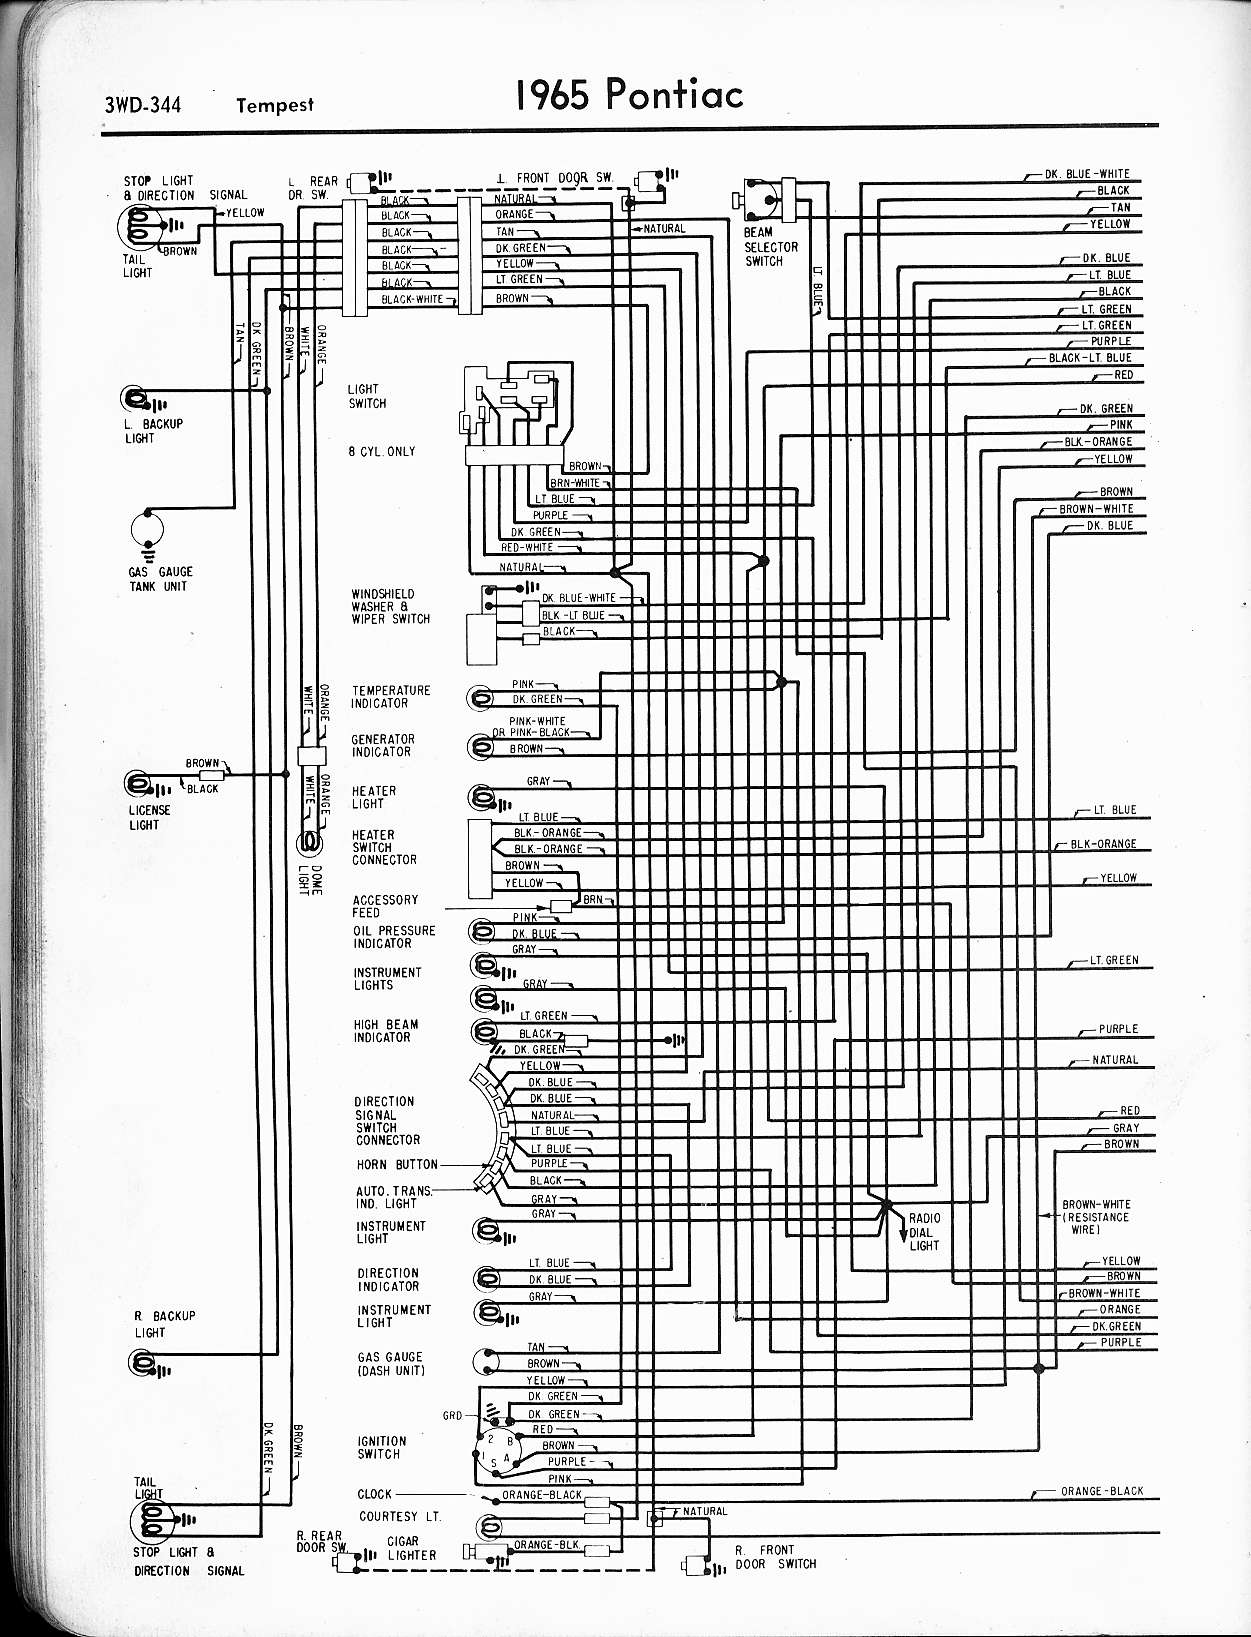 www wallaceracing com mwire5765 344 jpg rh blaknwyt co 1965 pontiac grand prix wiring diagram 1965 pontiac lemans wiring diagram